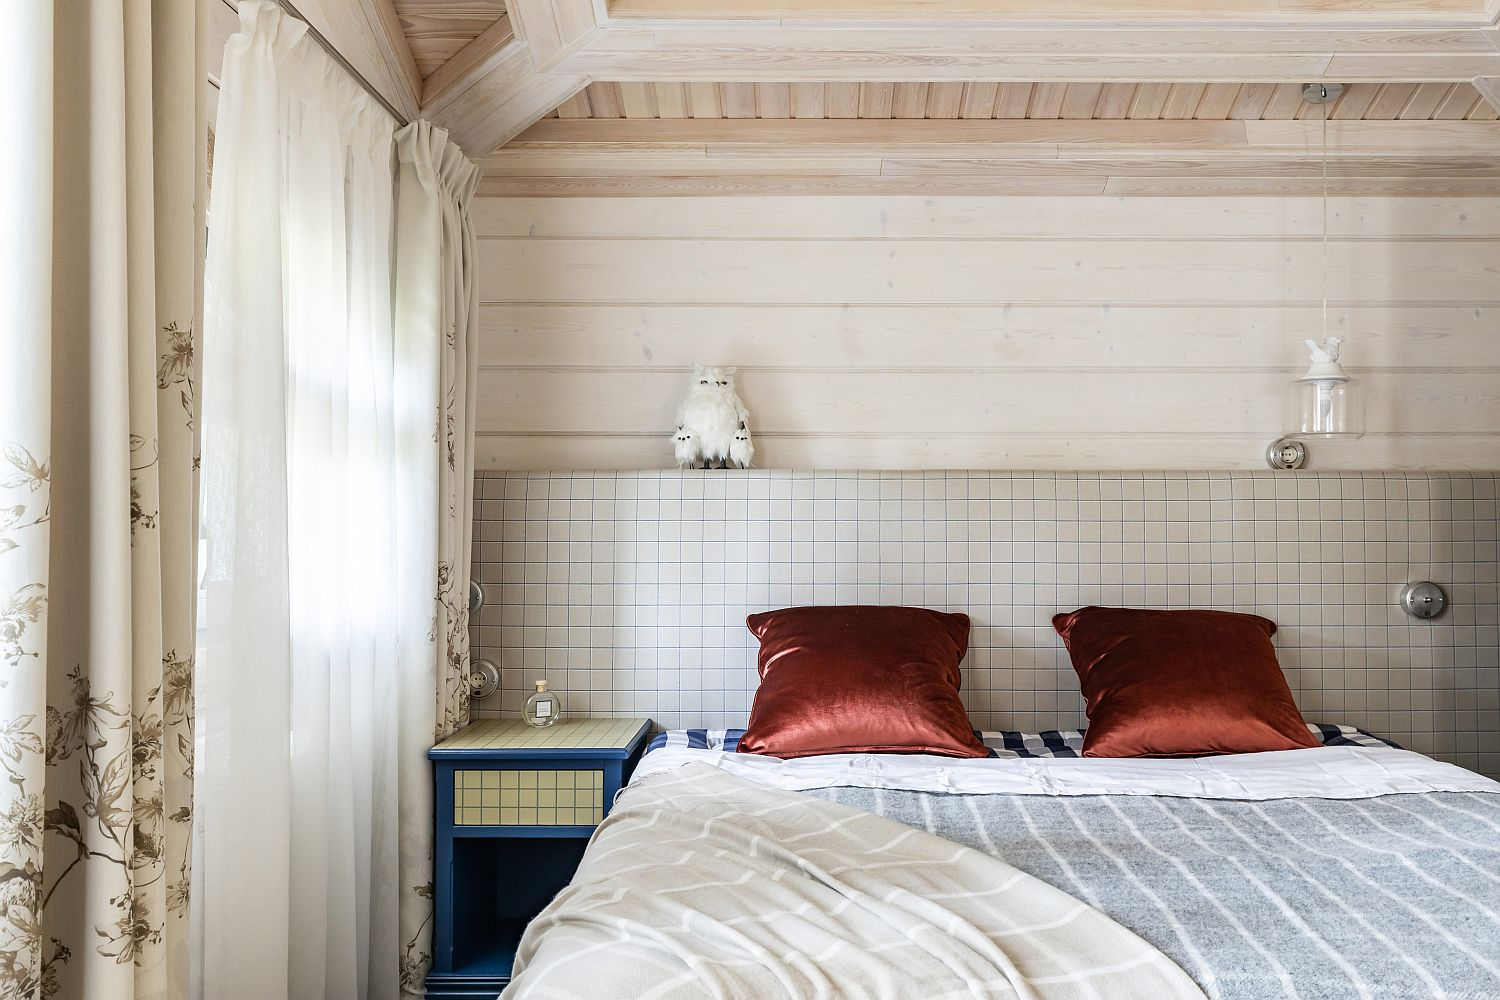 Ultra-easy and elegant way to add color to the small bedroom using accent pillows